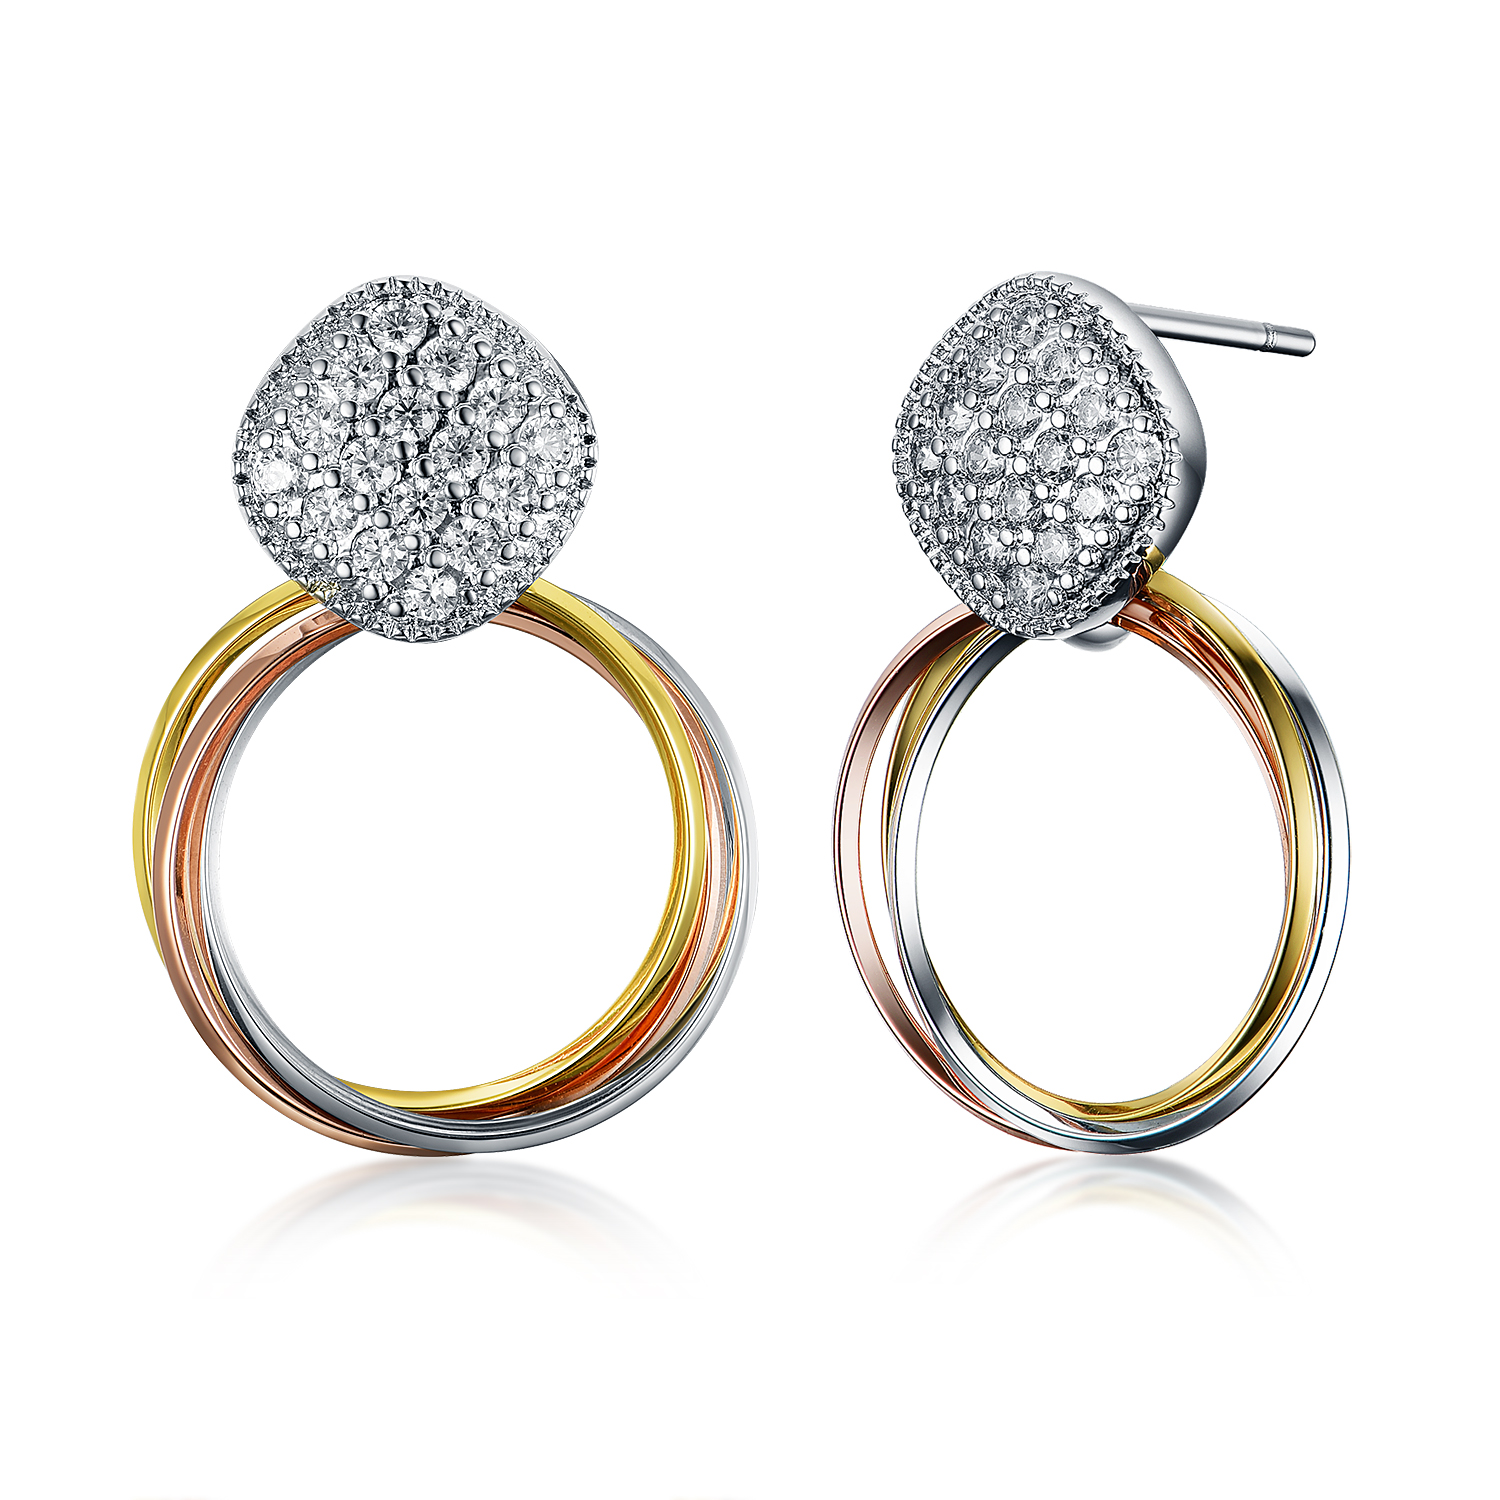 ER4552 Pave CZ Square Earring with Tri-color circles in Brass/Copper China reliable Jewelry vendor